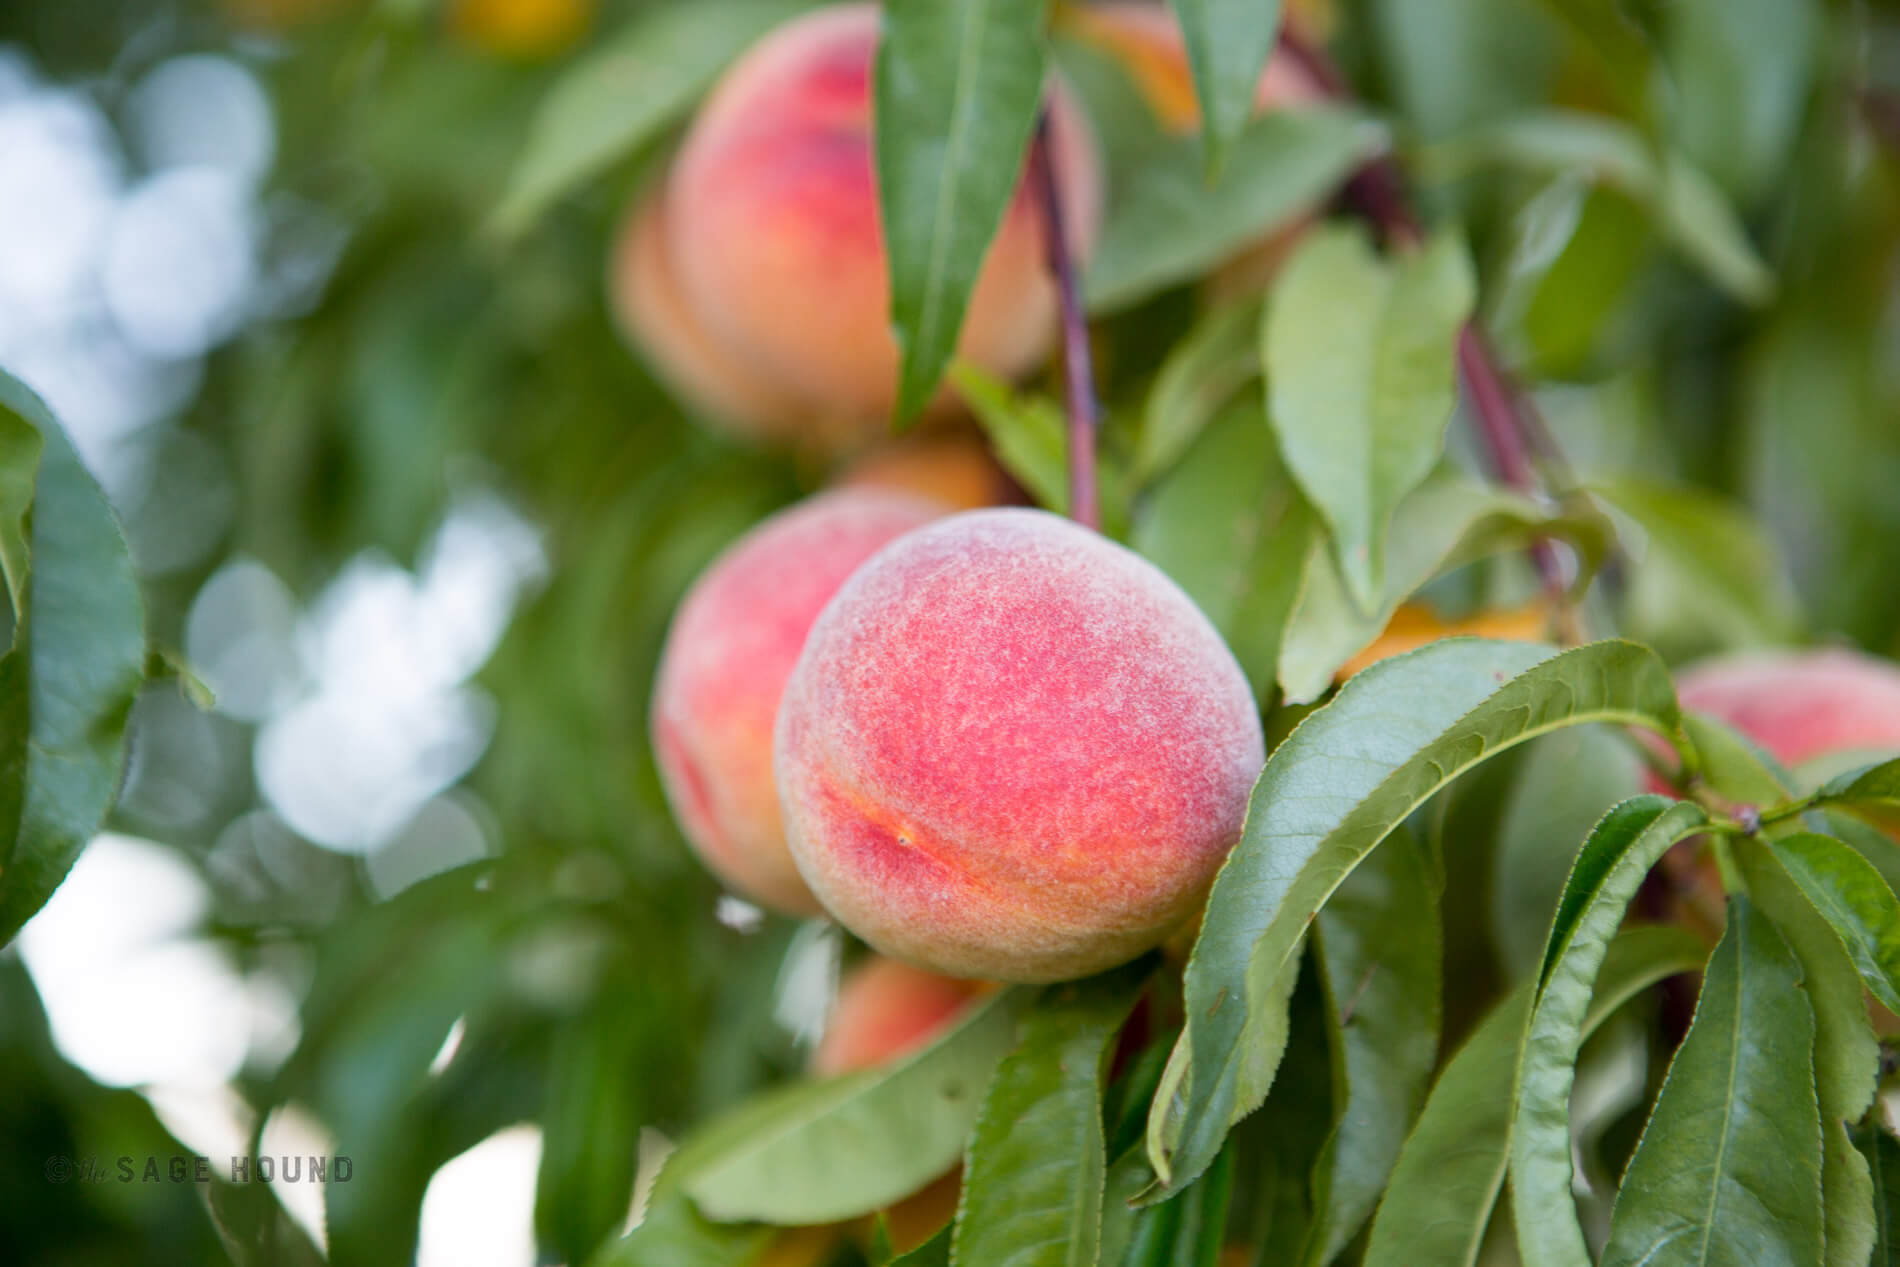 Sage Hound Farm Peaches